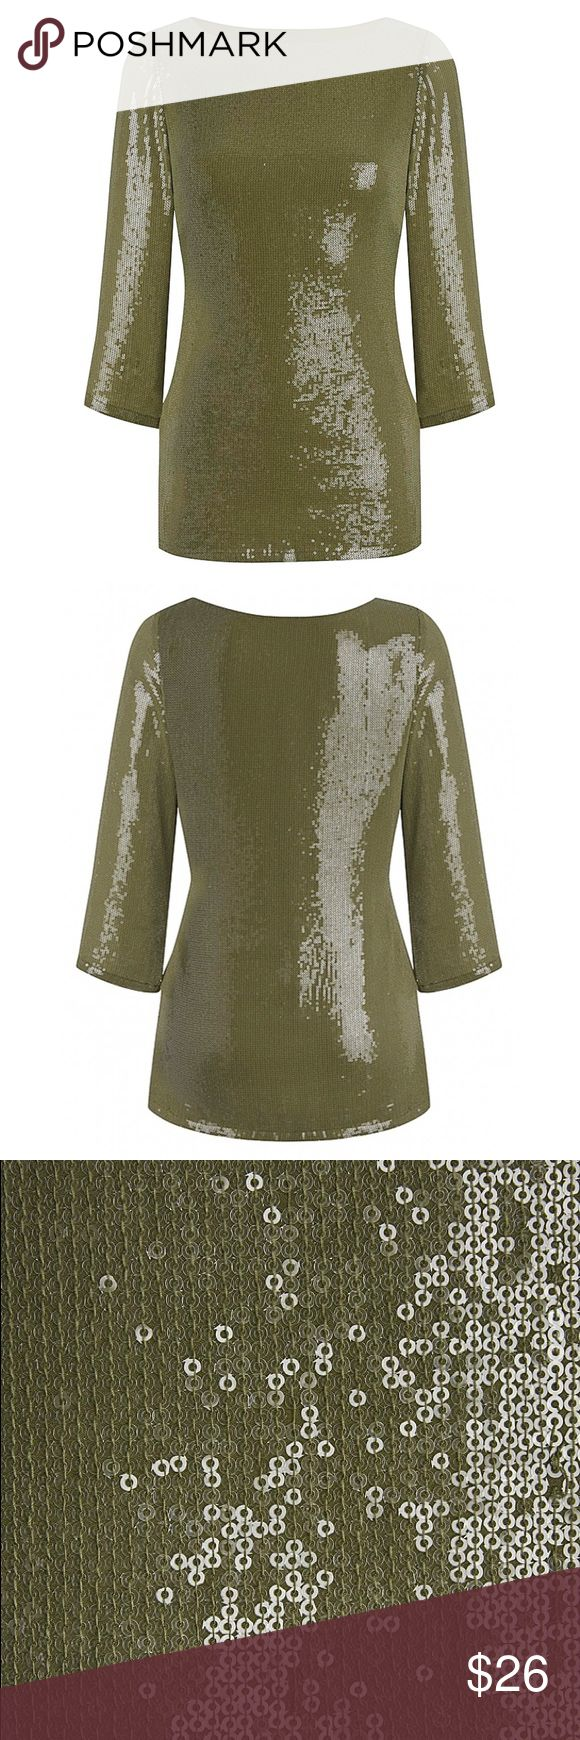 SIMPLY BE khaki green sequin top Sz 14 Brand new with tags! Purchased from SIMPLY BE in size US 14 - entire top is green sequins. Absolutely gorgeous!! 3/4 length sleeve. Bringing glitz and glam to your wardrobe couldn't be easier this season. Beautifully fashioned in an on-trend khaki shade, this chic top features all-over sequin detailing for a modern outfit boost. Designed in a classic T-shirt style, this sparkly top looks great with smart pants. Length 27in/69cm. Hand wash. Polyester…